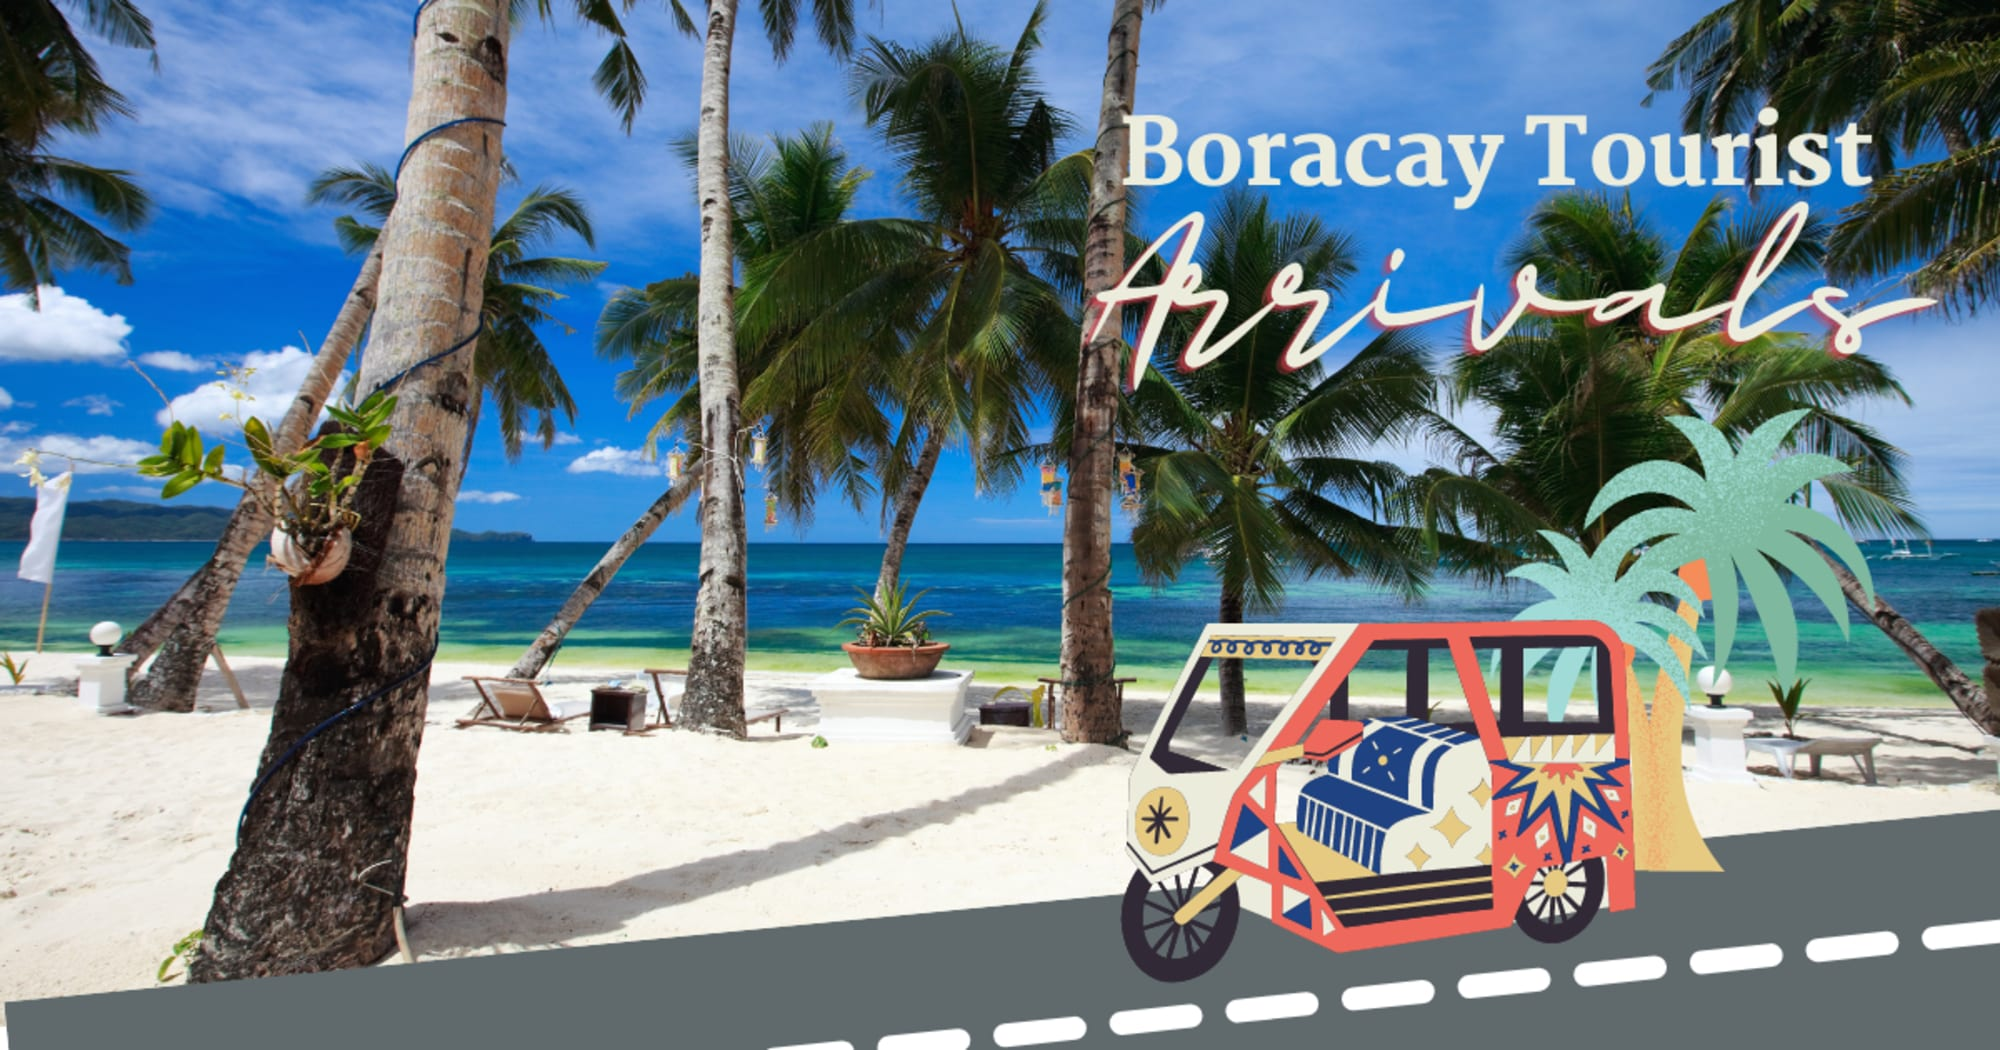 In just 20 days more than 16k tourists flocks Boracay Island